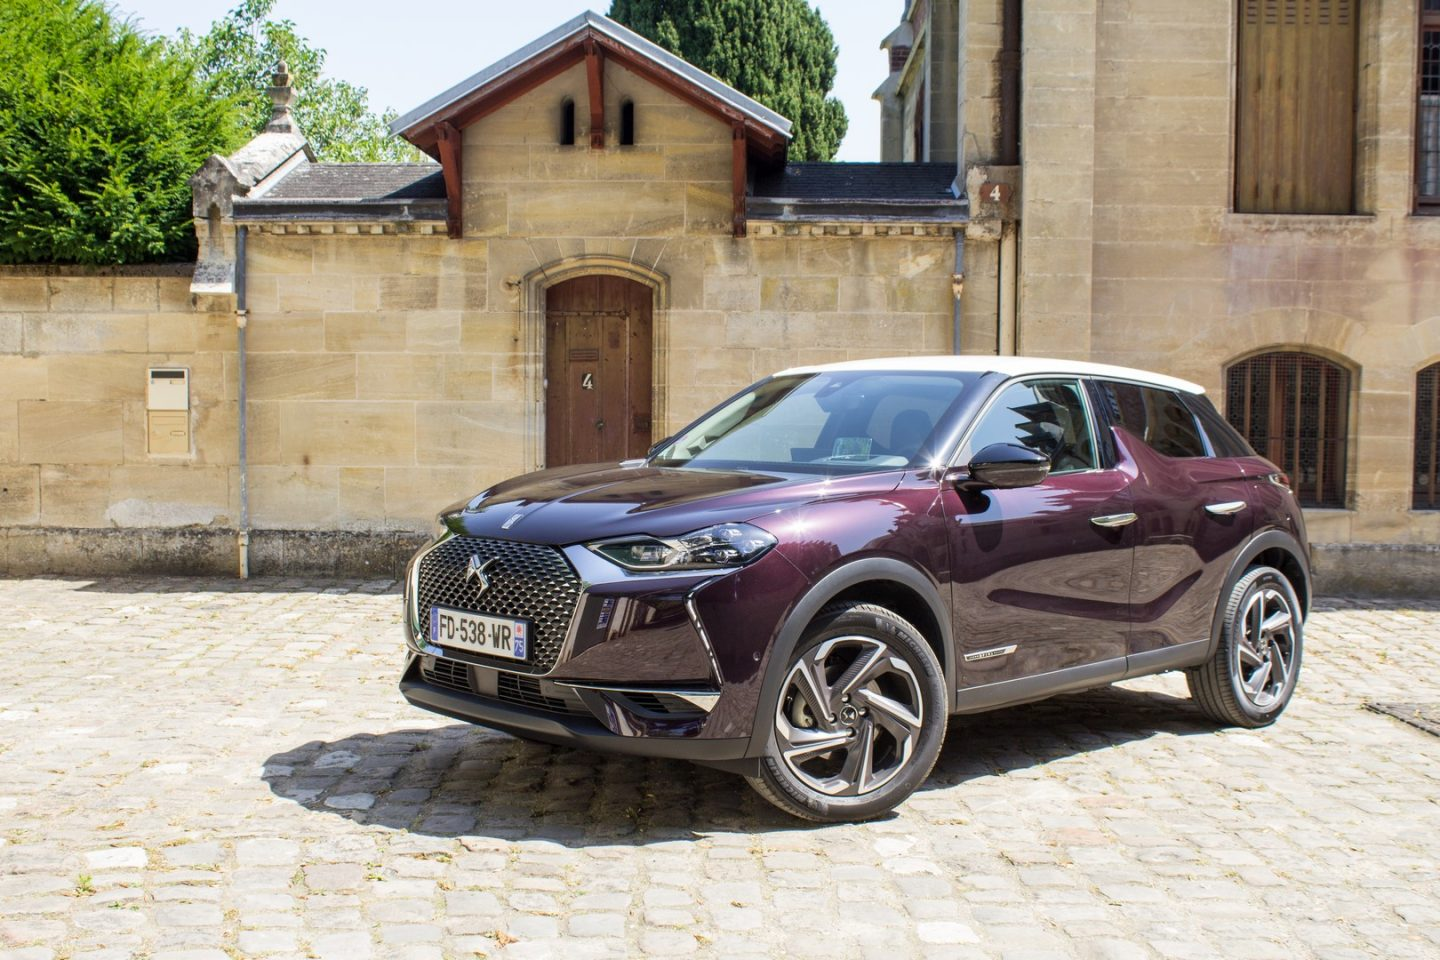 2018 - [DS Automobiles] DS 3 Crossback (D34) - Page 39 IMG_6767-1440x960